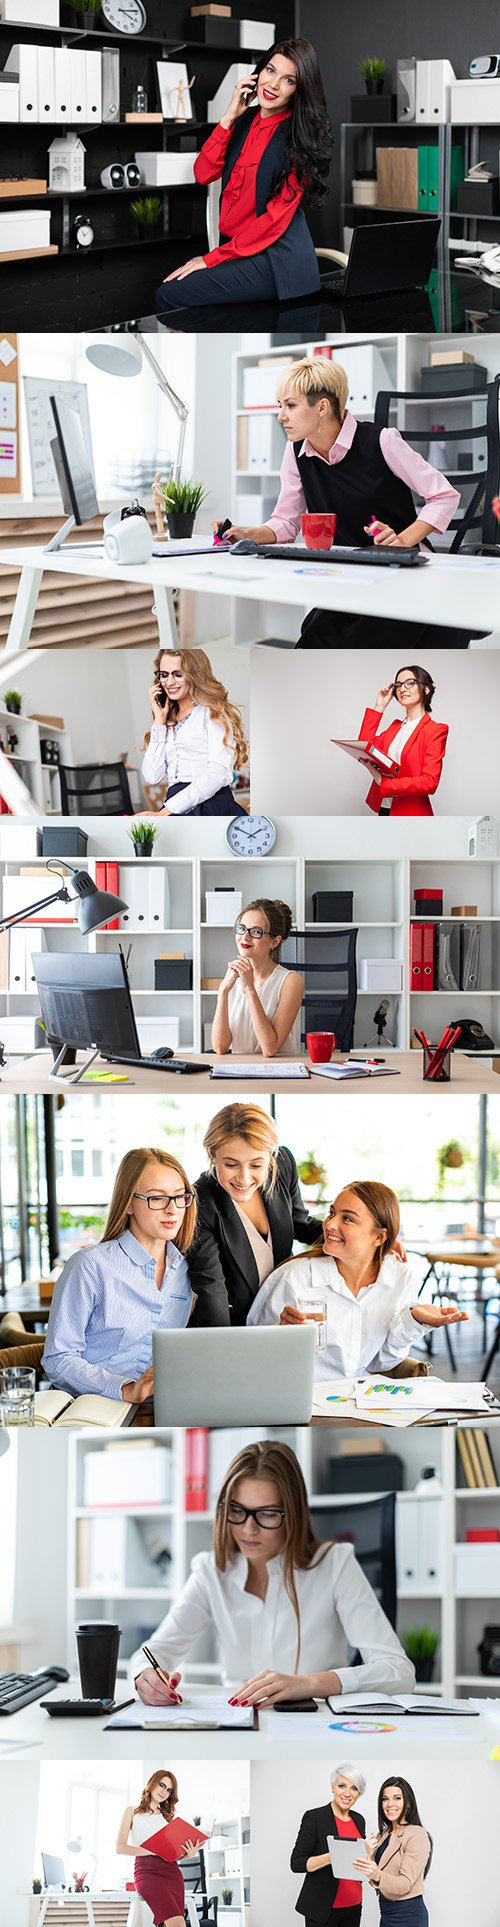 Young business girl professional employee company at desktop